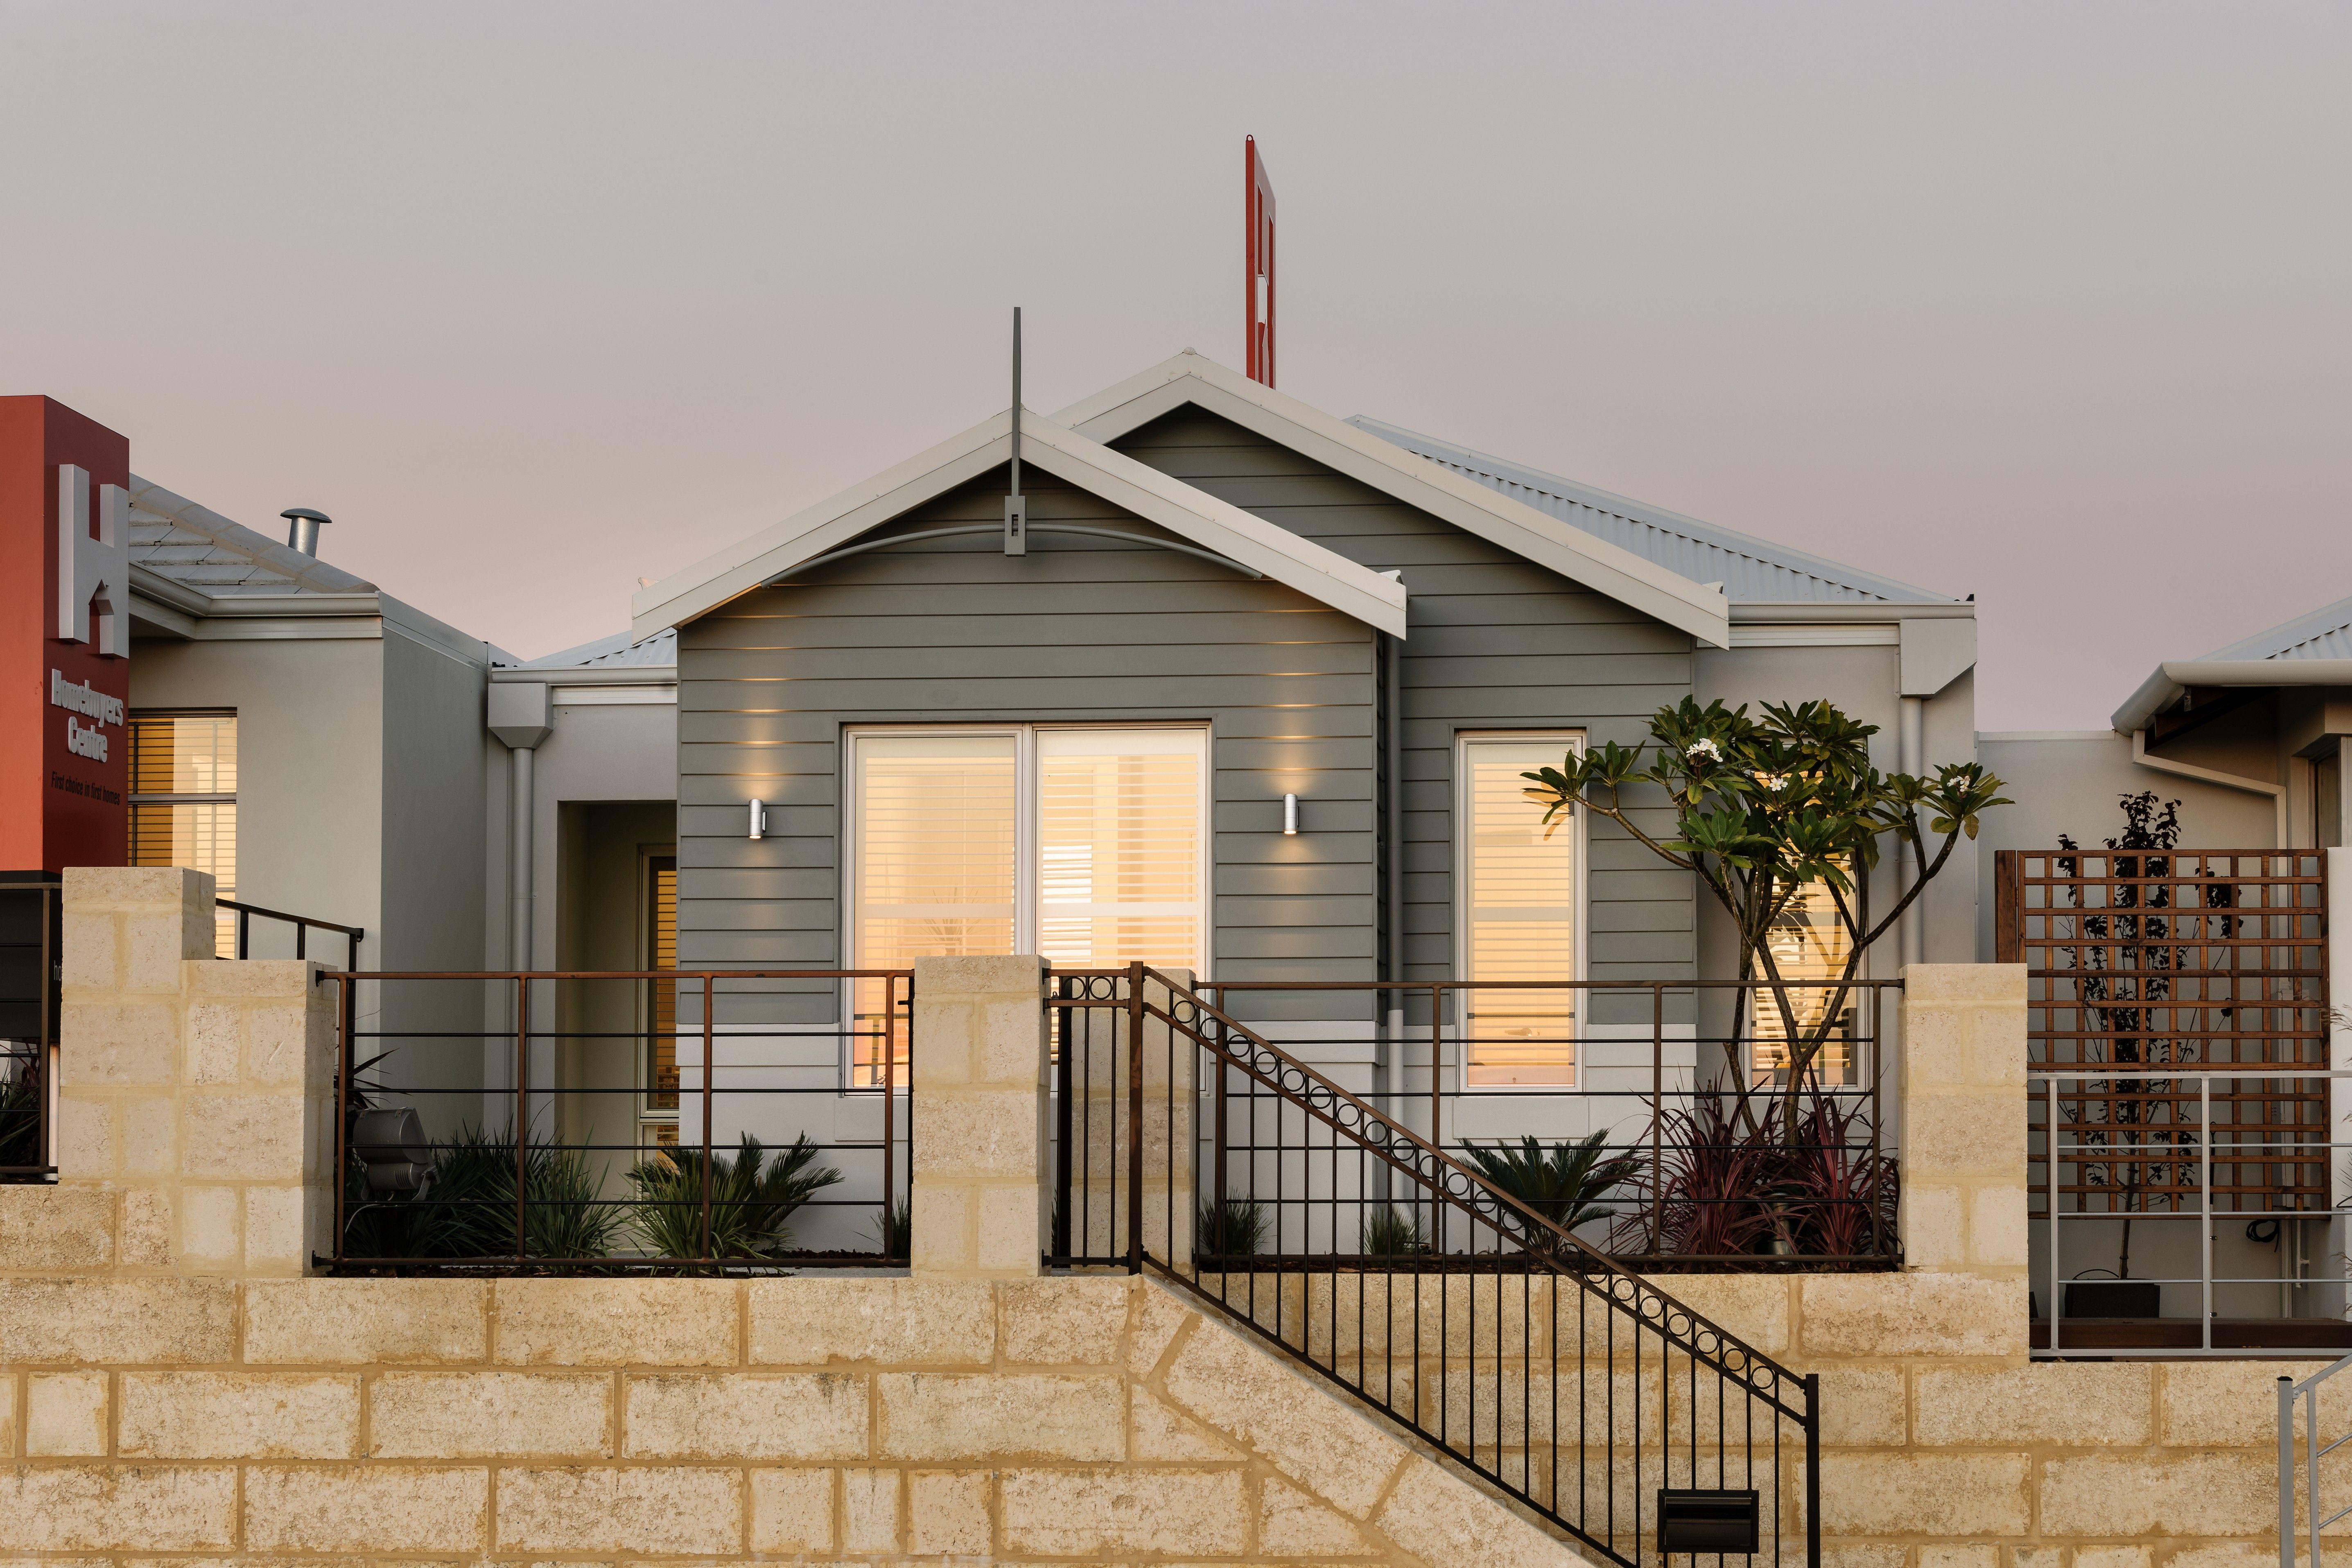 Homebuyers centre haven display home own your home pinterest homebuyers centre haven display home own your home pinterest house malvernweather Image collections